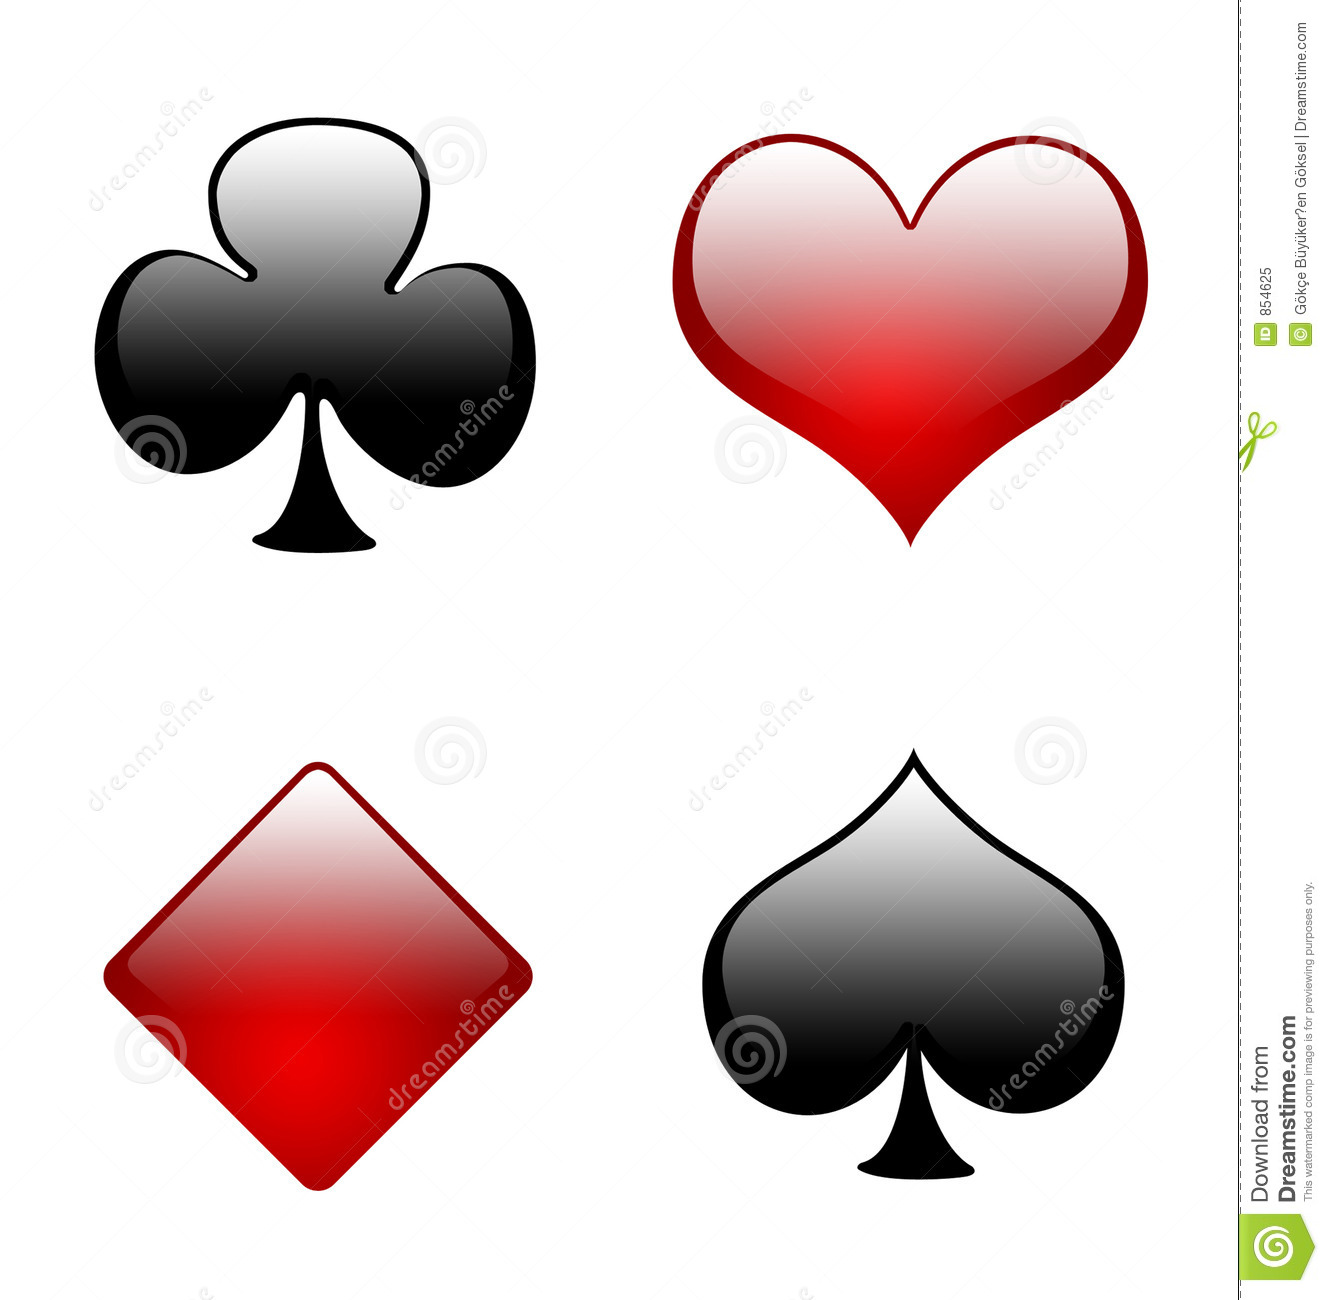 Ace Of Clubs Playing Card Clipart - Clipart Suggest